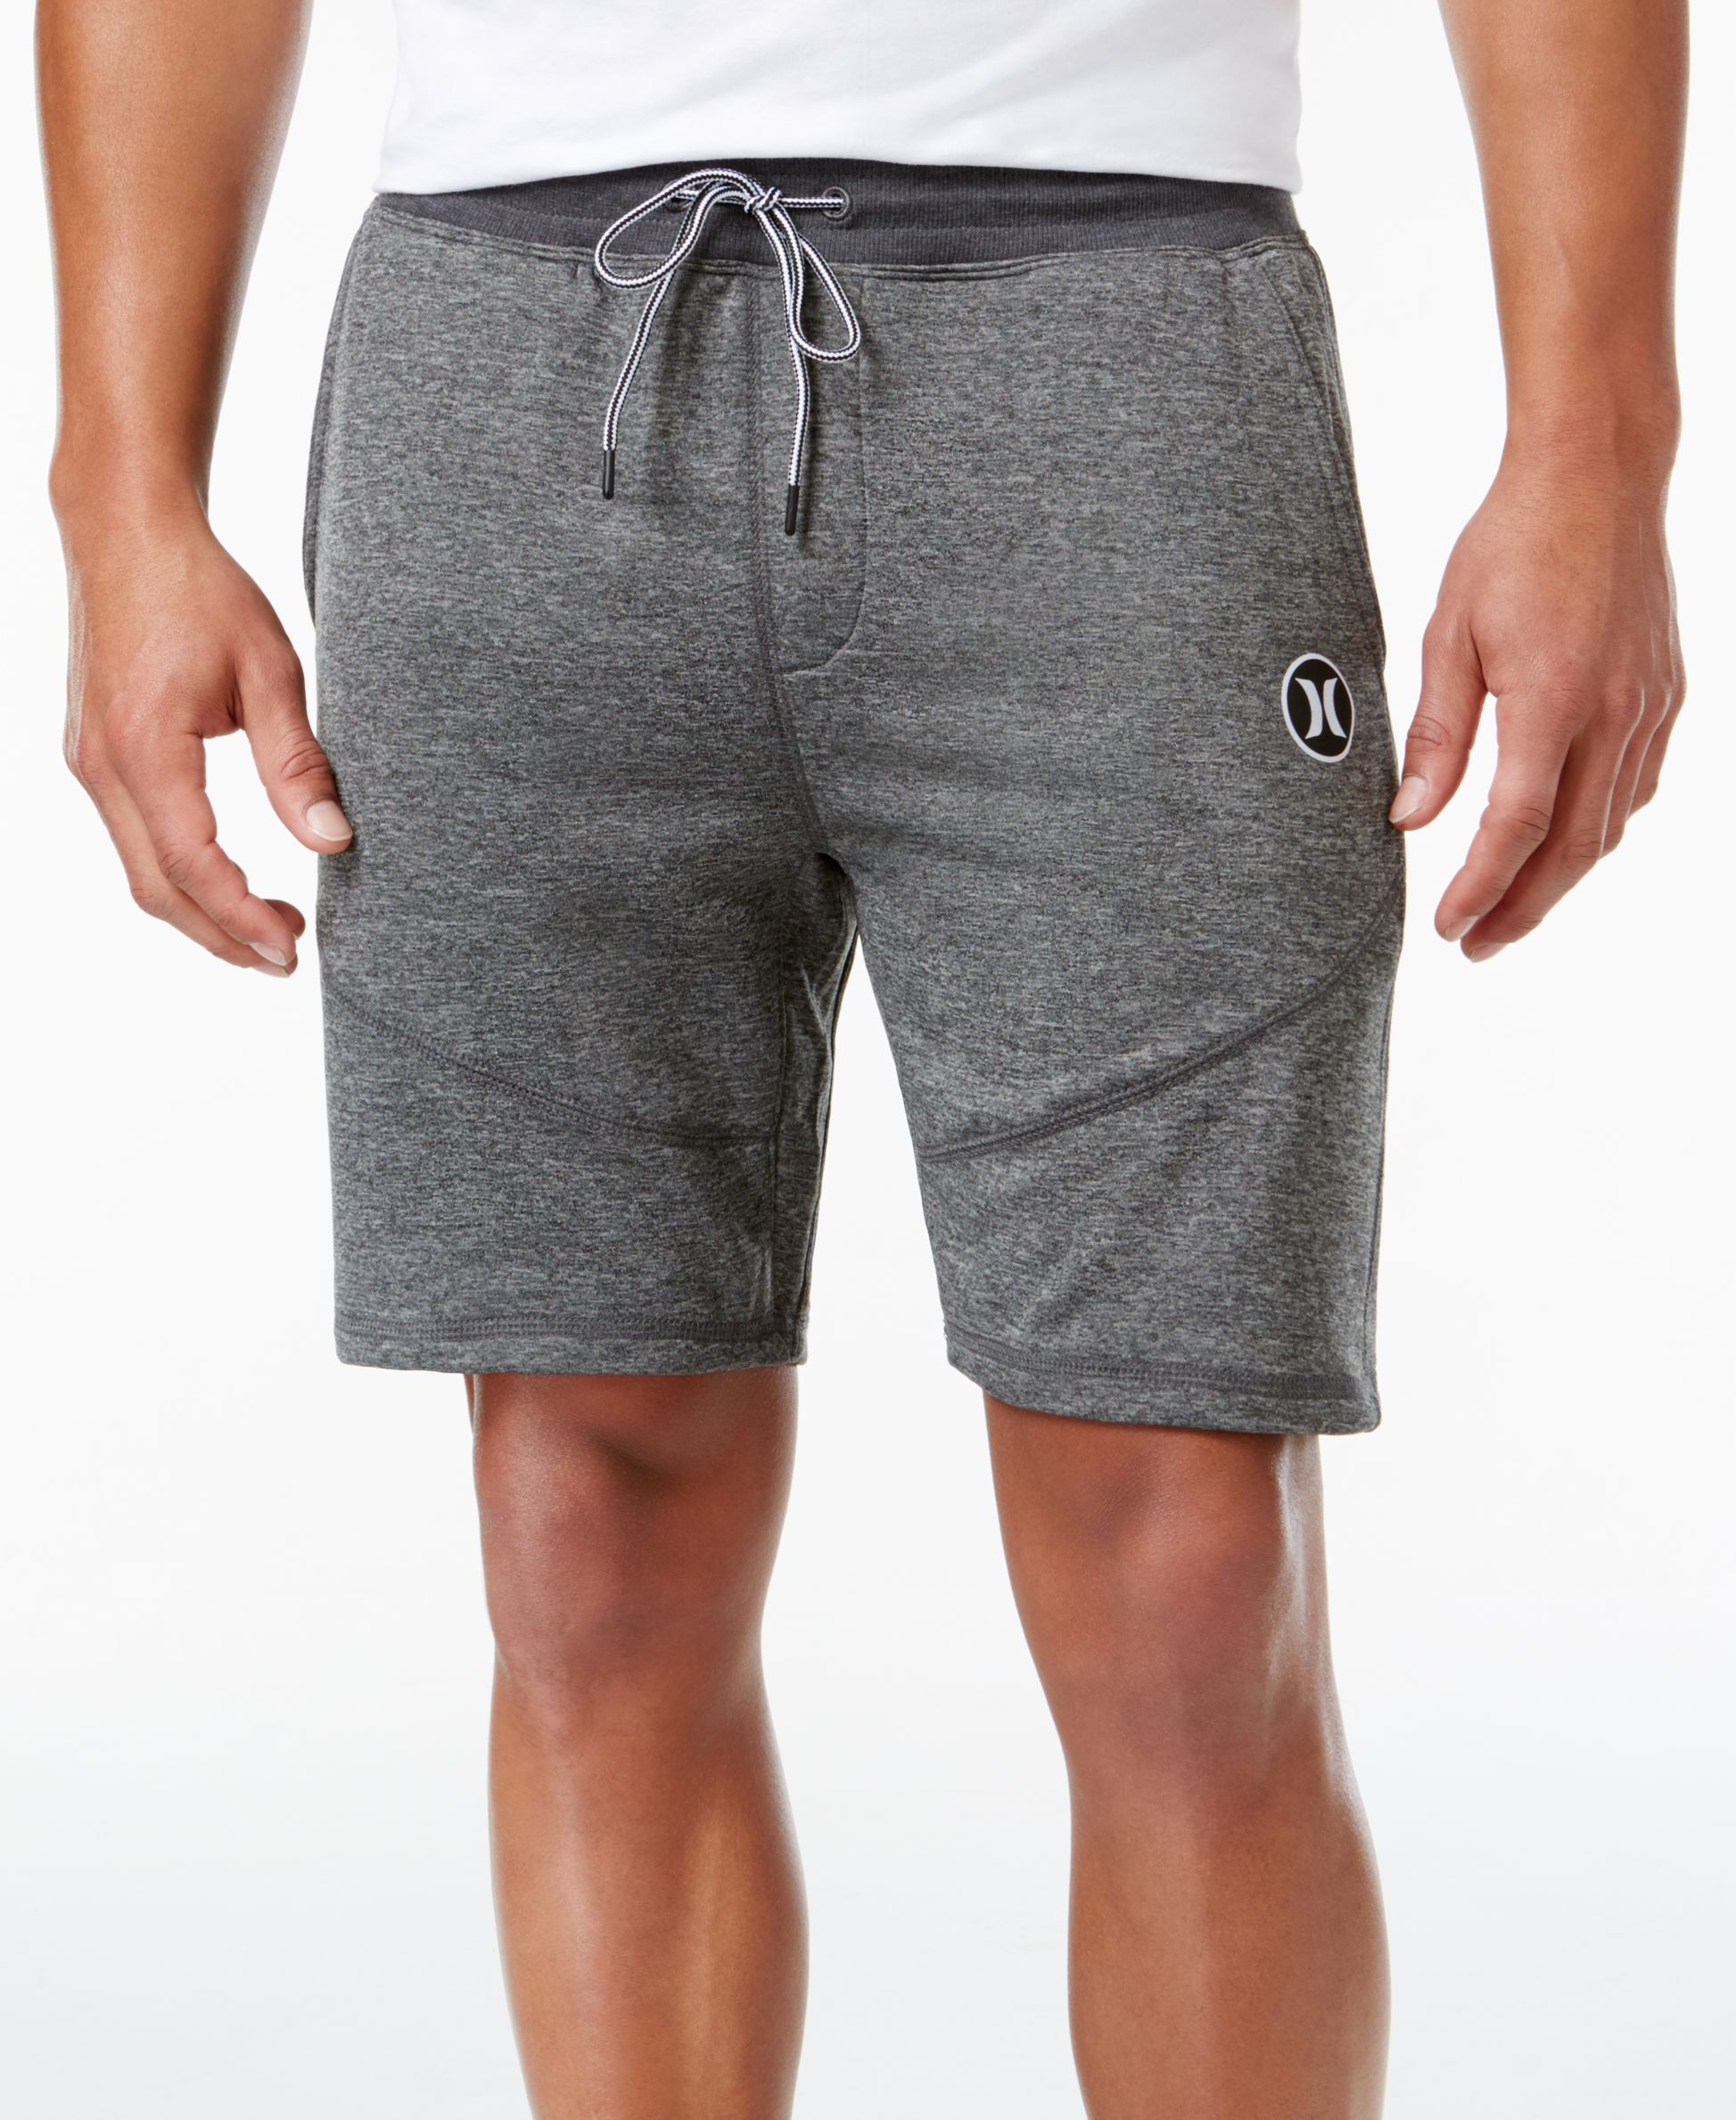 Hurley Men's Dri-Fit Radiate Fleece Shorts - Shorts - Men - Macy's